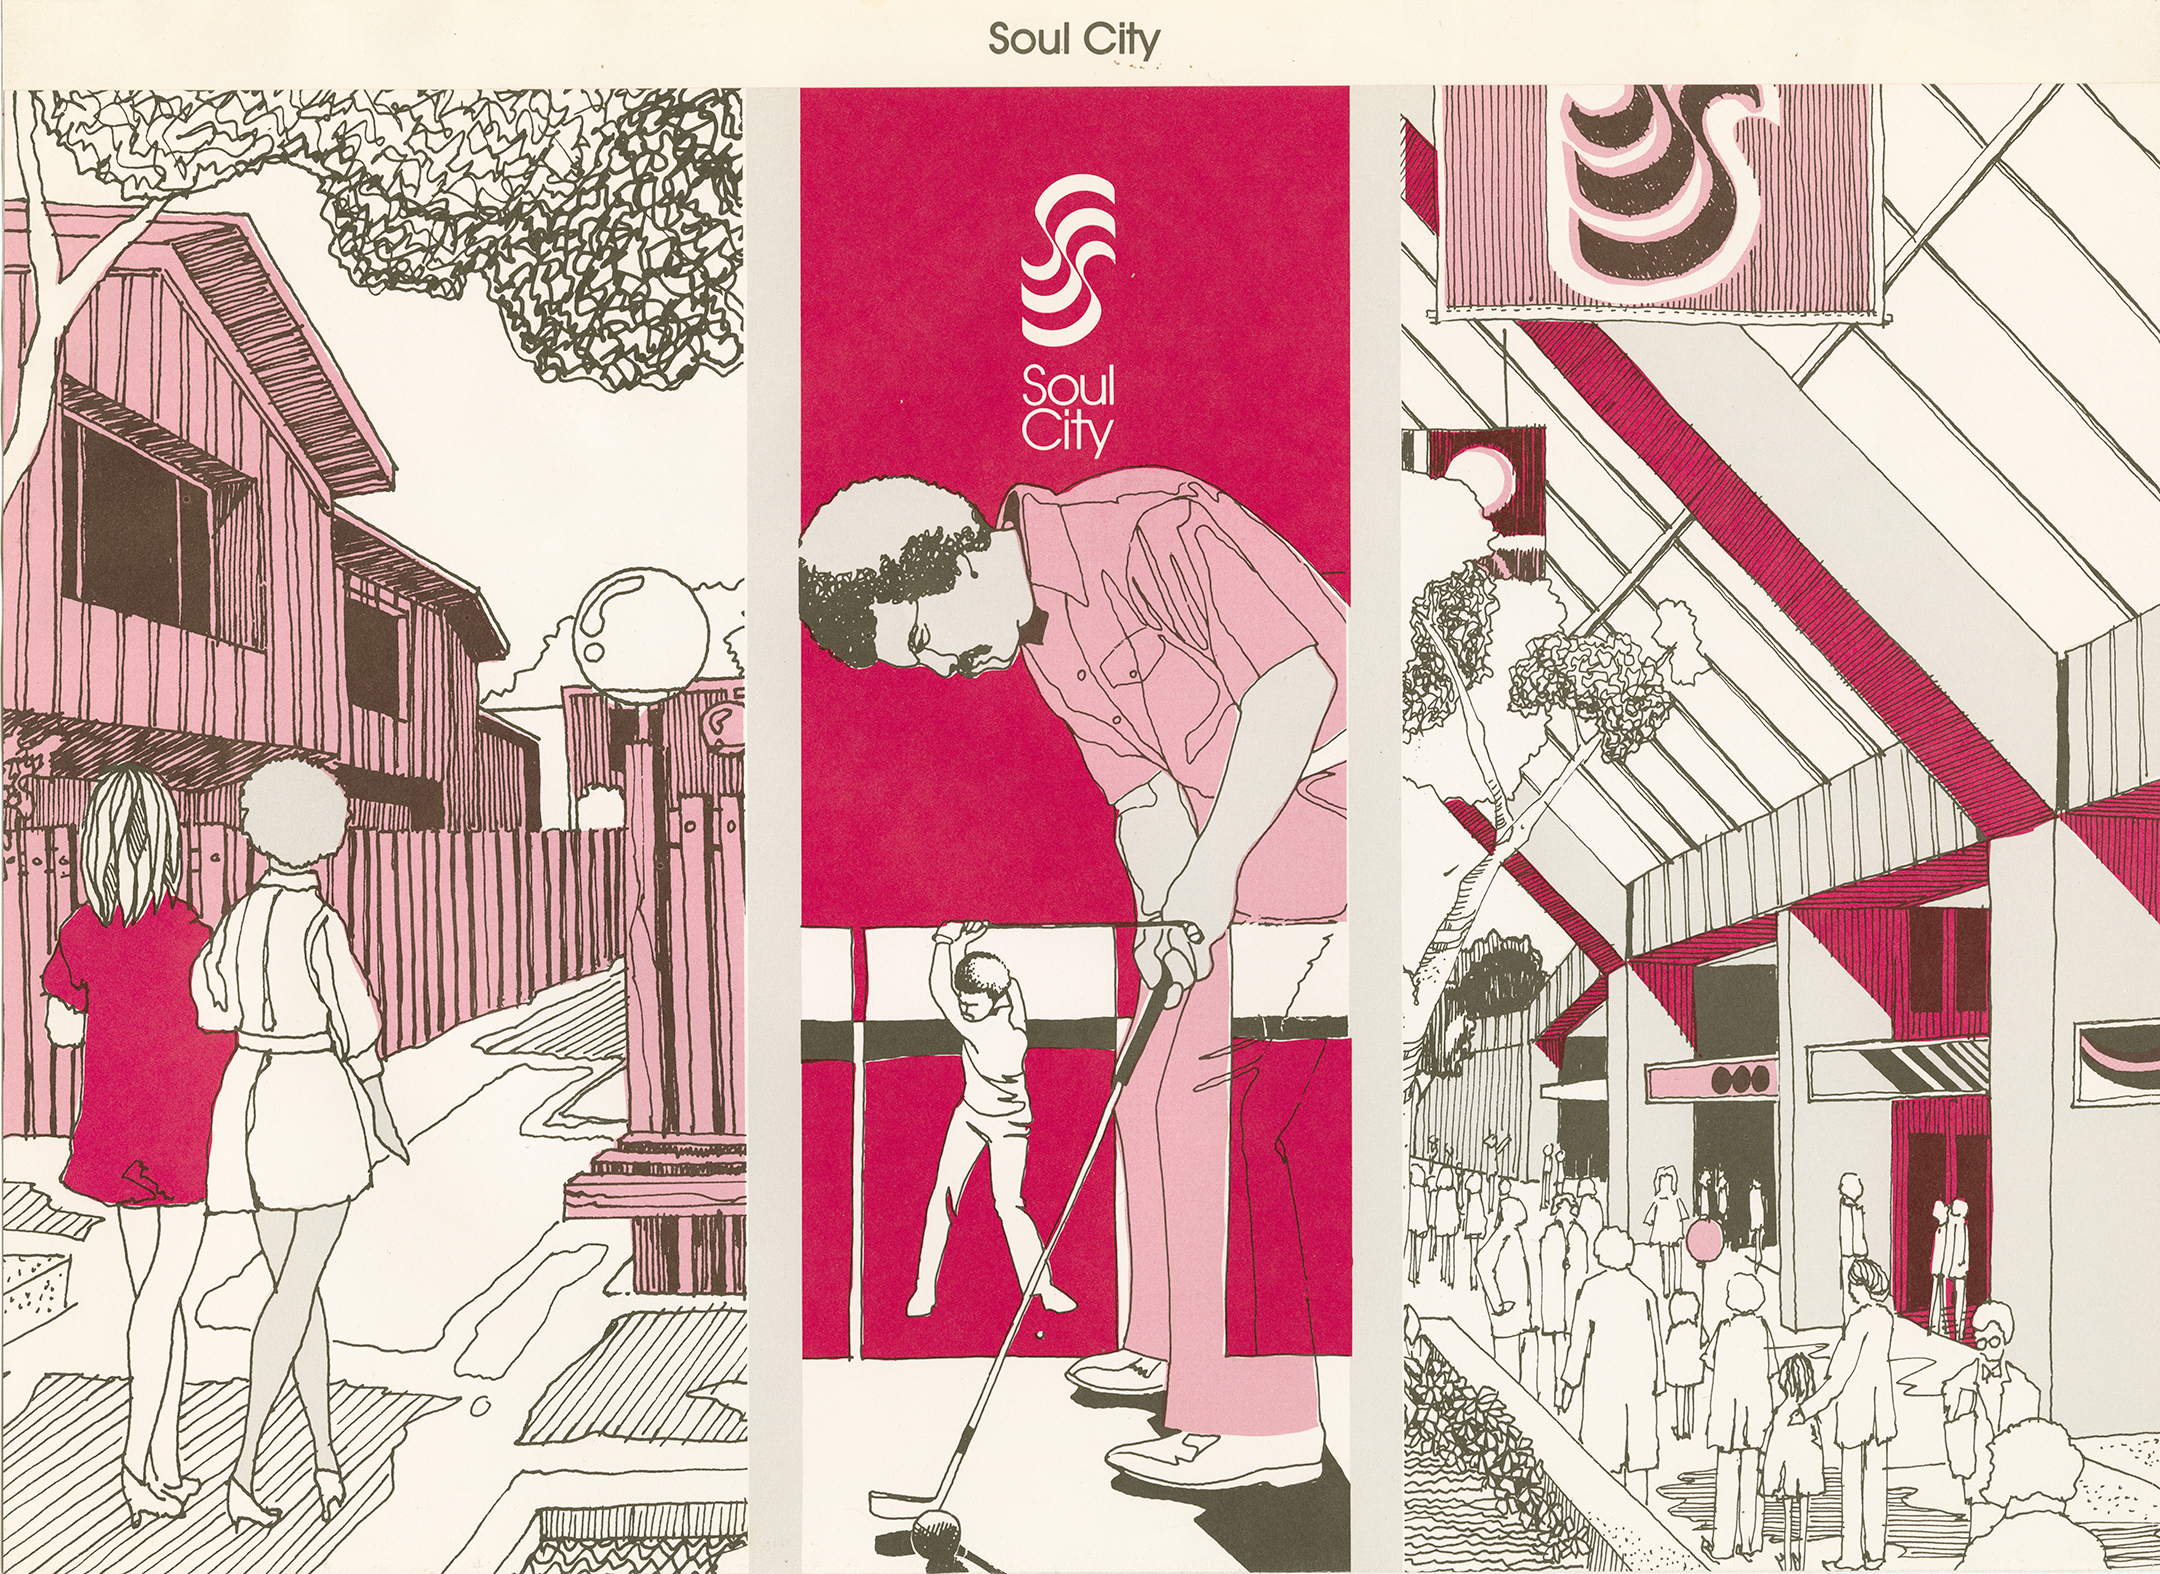 Illustration from the 1970s in pink and white and red promoting Soul City by showing an outdoor market on the left, men golfing in the center, and an indoor shopping mall on the right